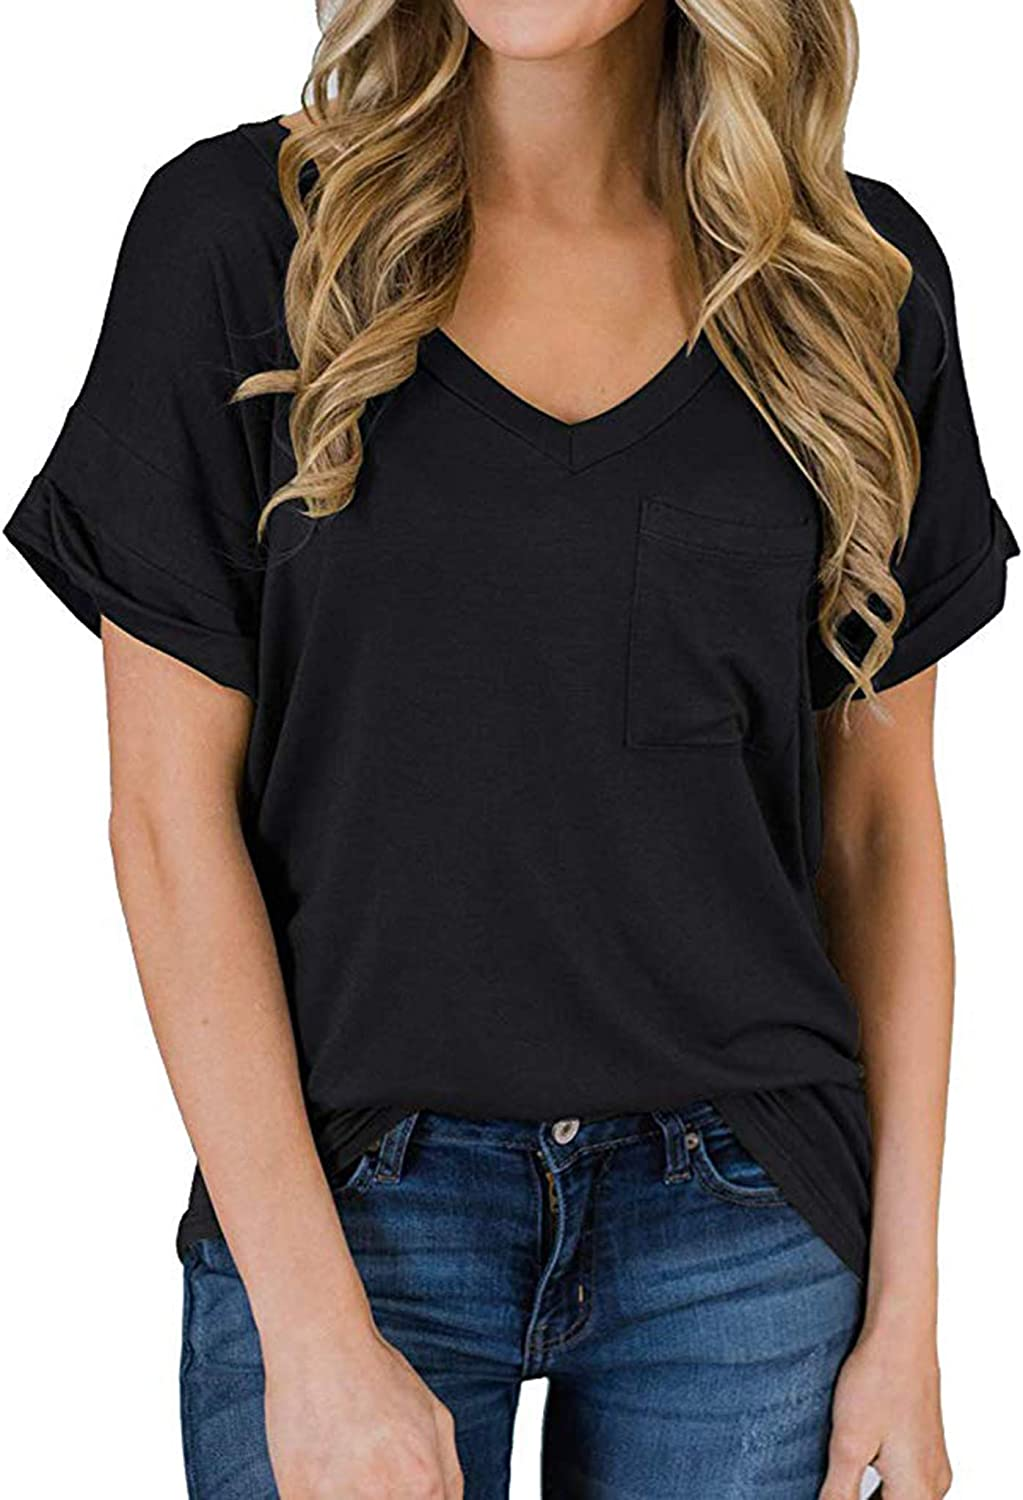 ECOWISH Women's Casual Tops V-Neck Shirts Loose Blouse Casual Basic Tee T-Shirt with Pocket